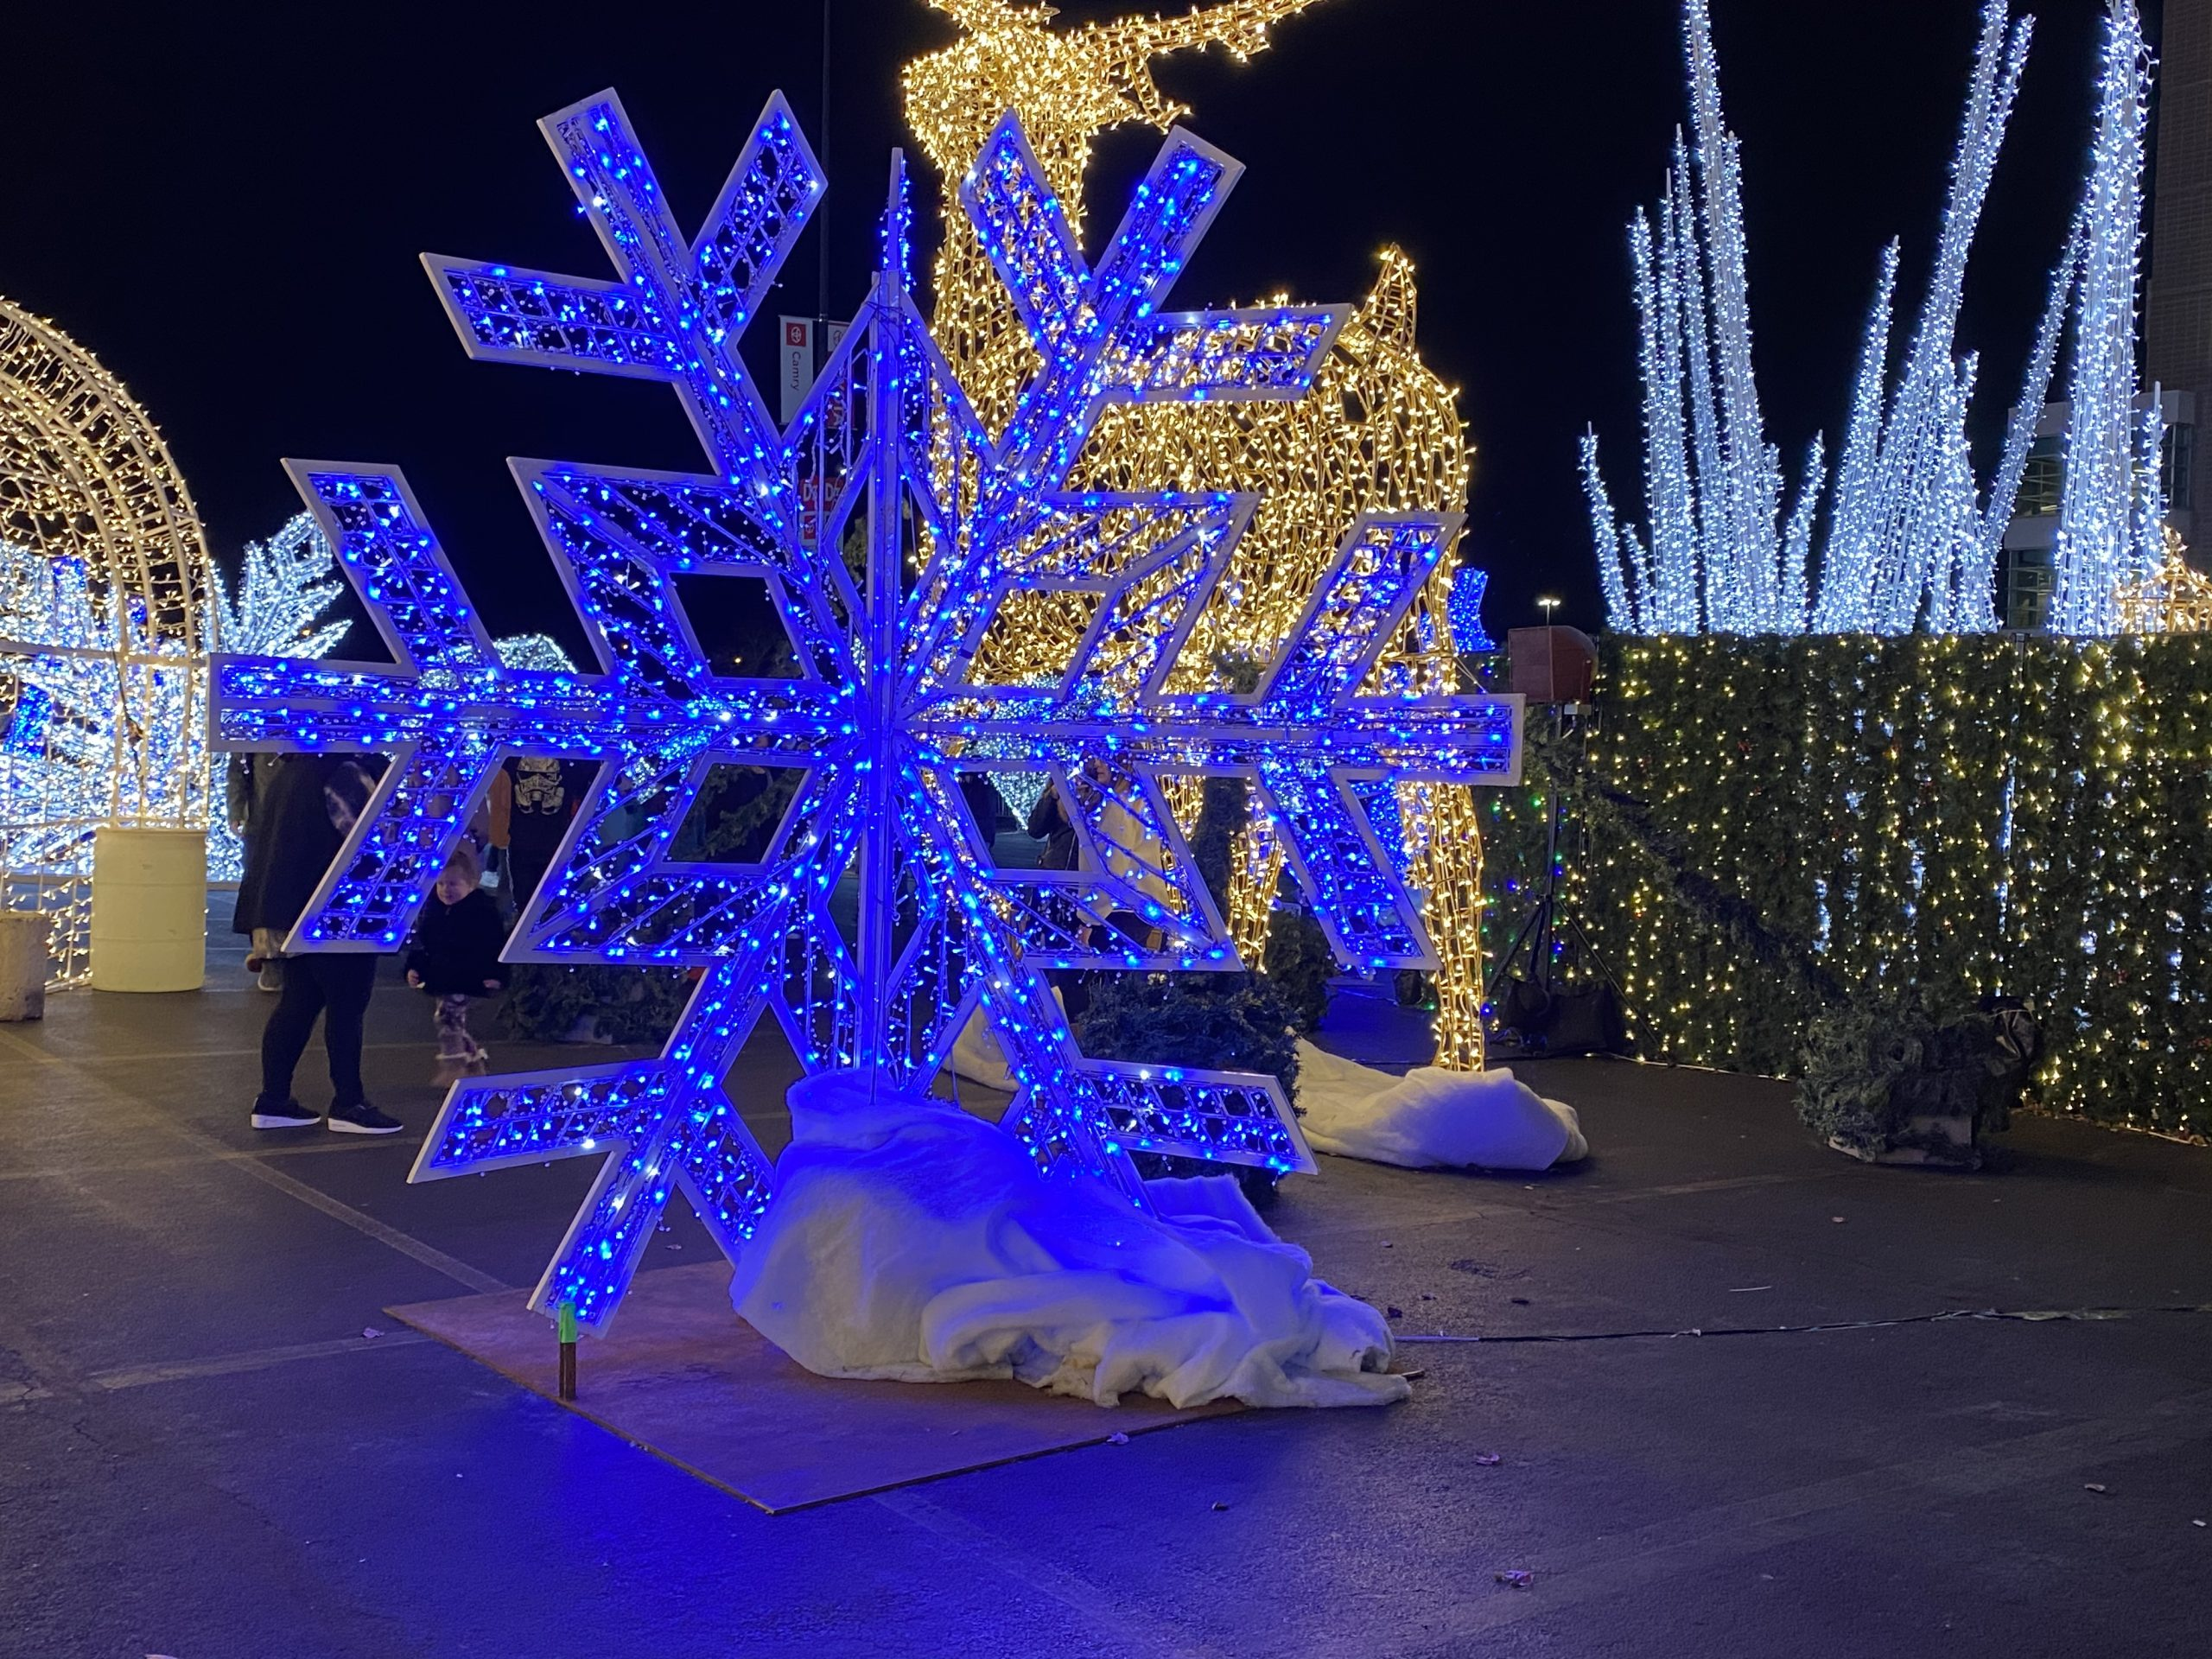 Winter on Broad – A light show in Philadelphia